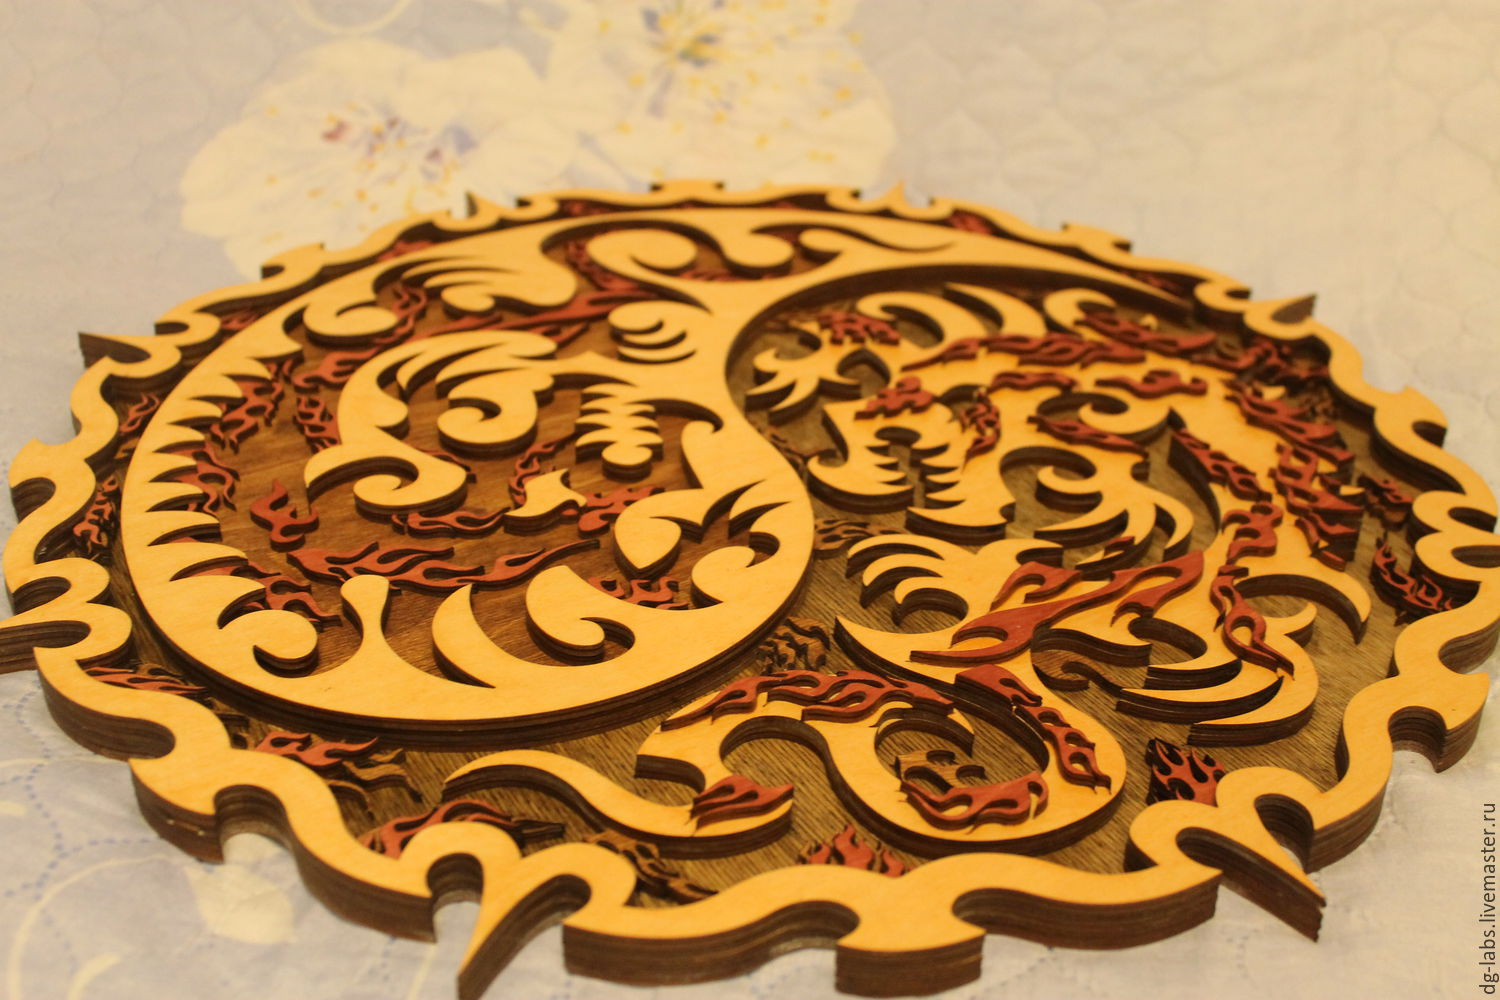 Panels Of Dragons Yin Yang Shop Online On Livemaster With Shipping